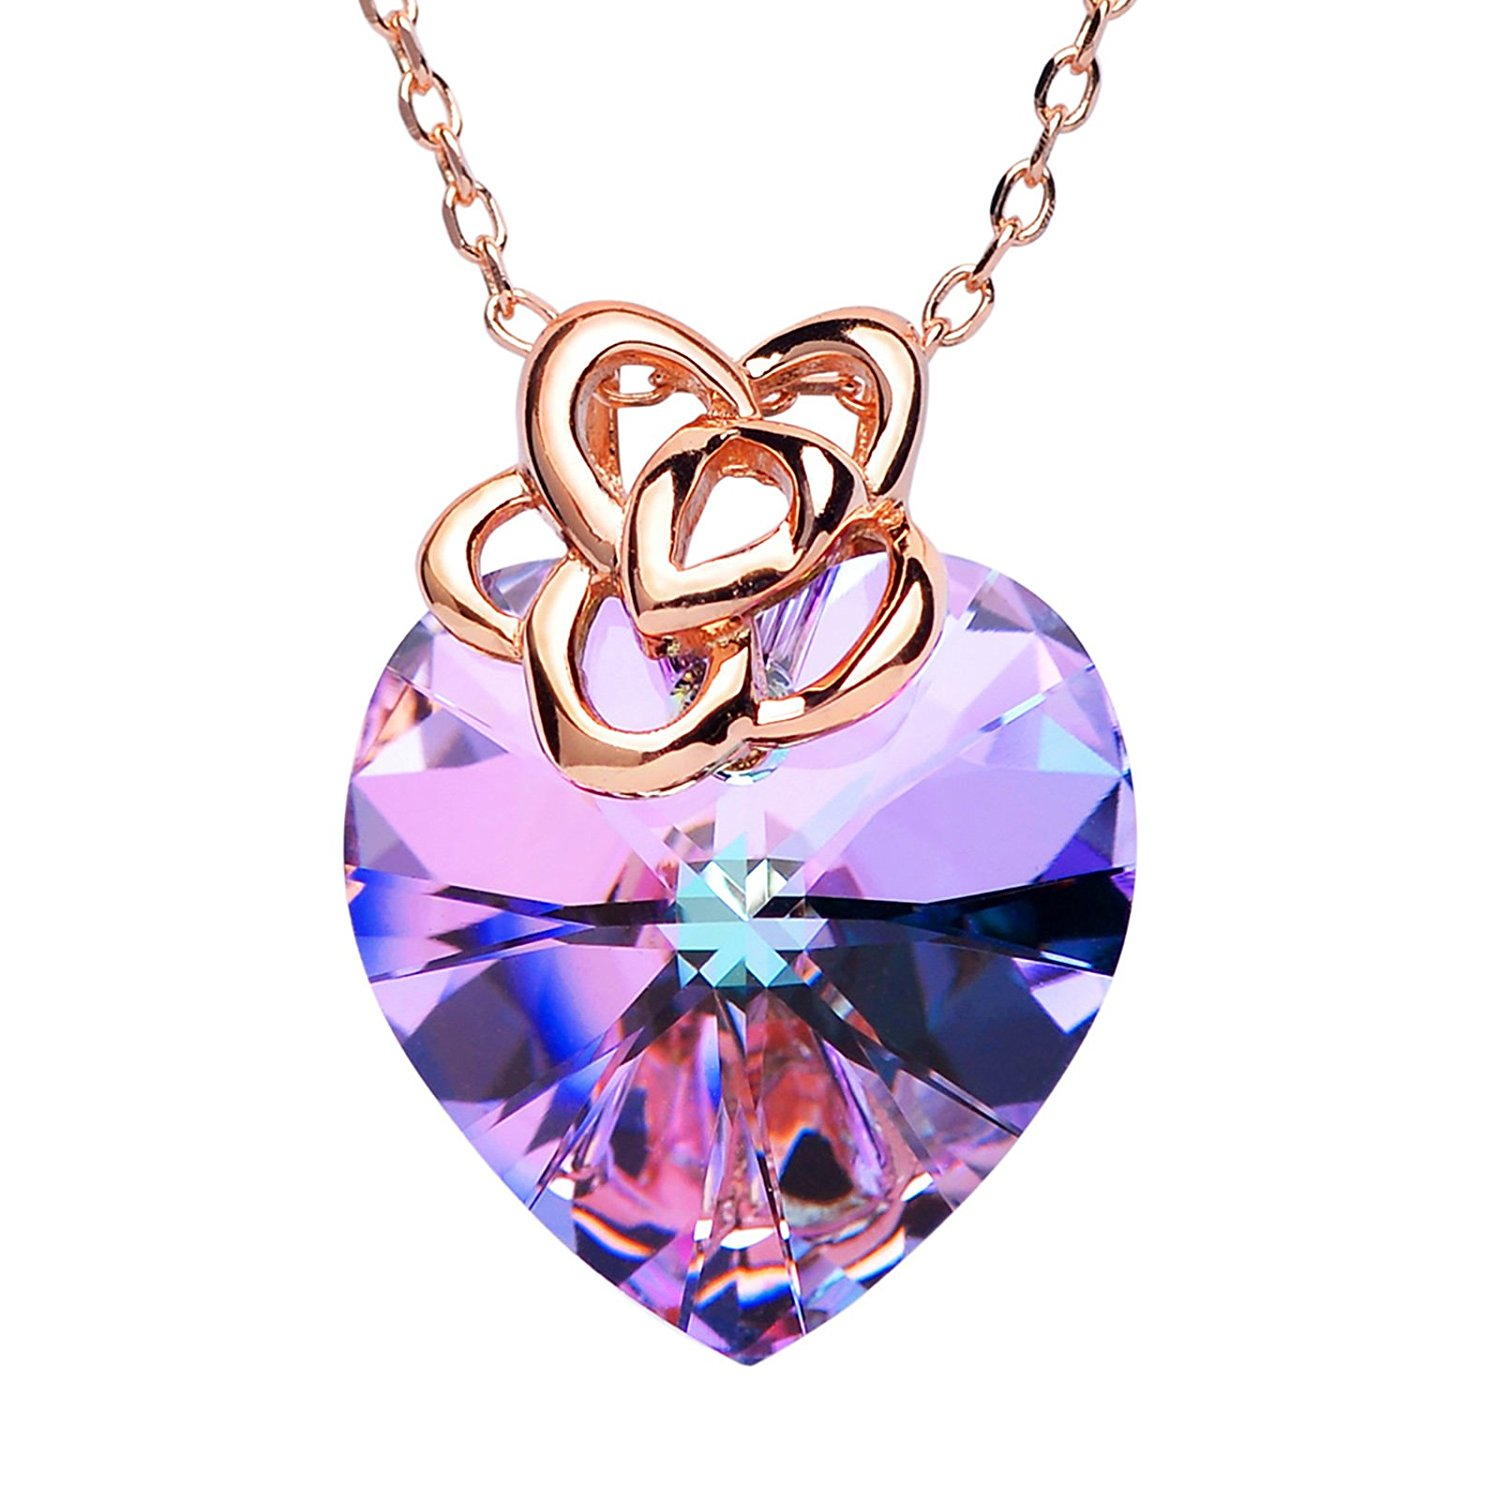 "SWEETV ""Endless Love"" Purple Heart Swarovski Crystal Pendant Necklace with Rose Gold Chains Jewelry Gift for Women, 16""+2"""